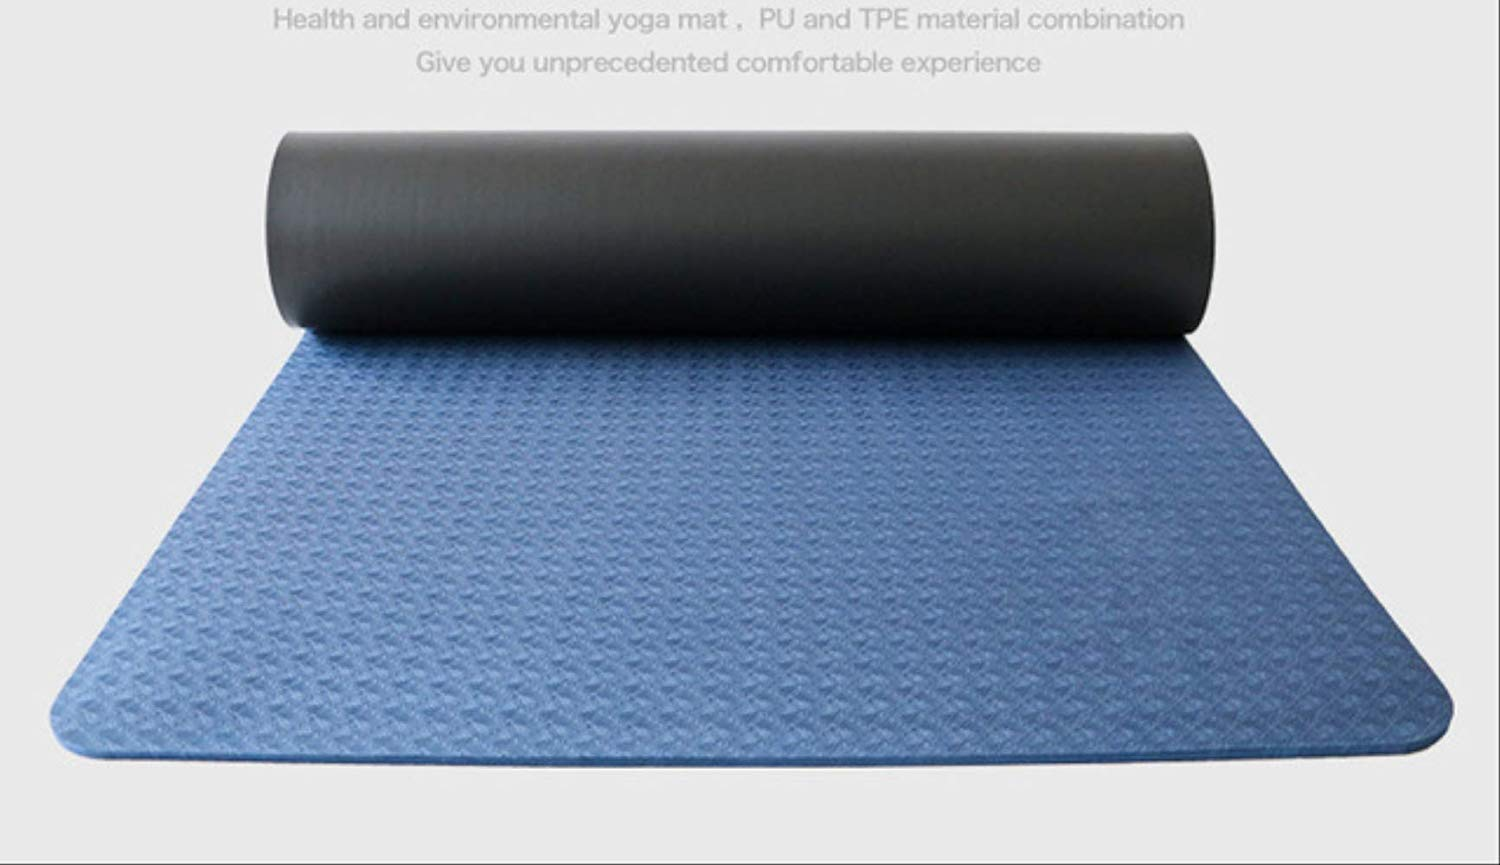 jkkl India Tpe 183Cm * 66Cm * 5Mm Yoga más largo ...